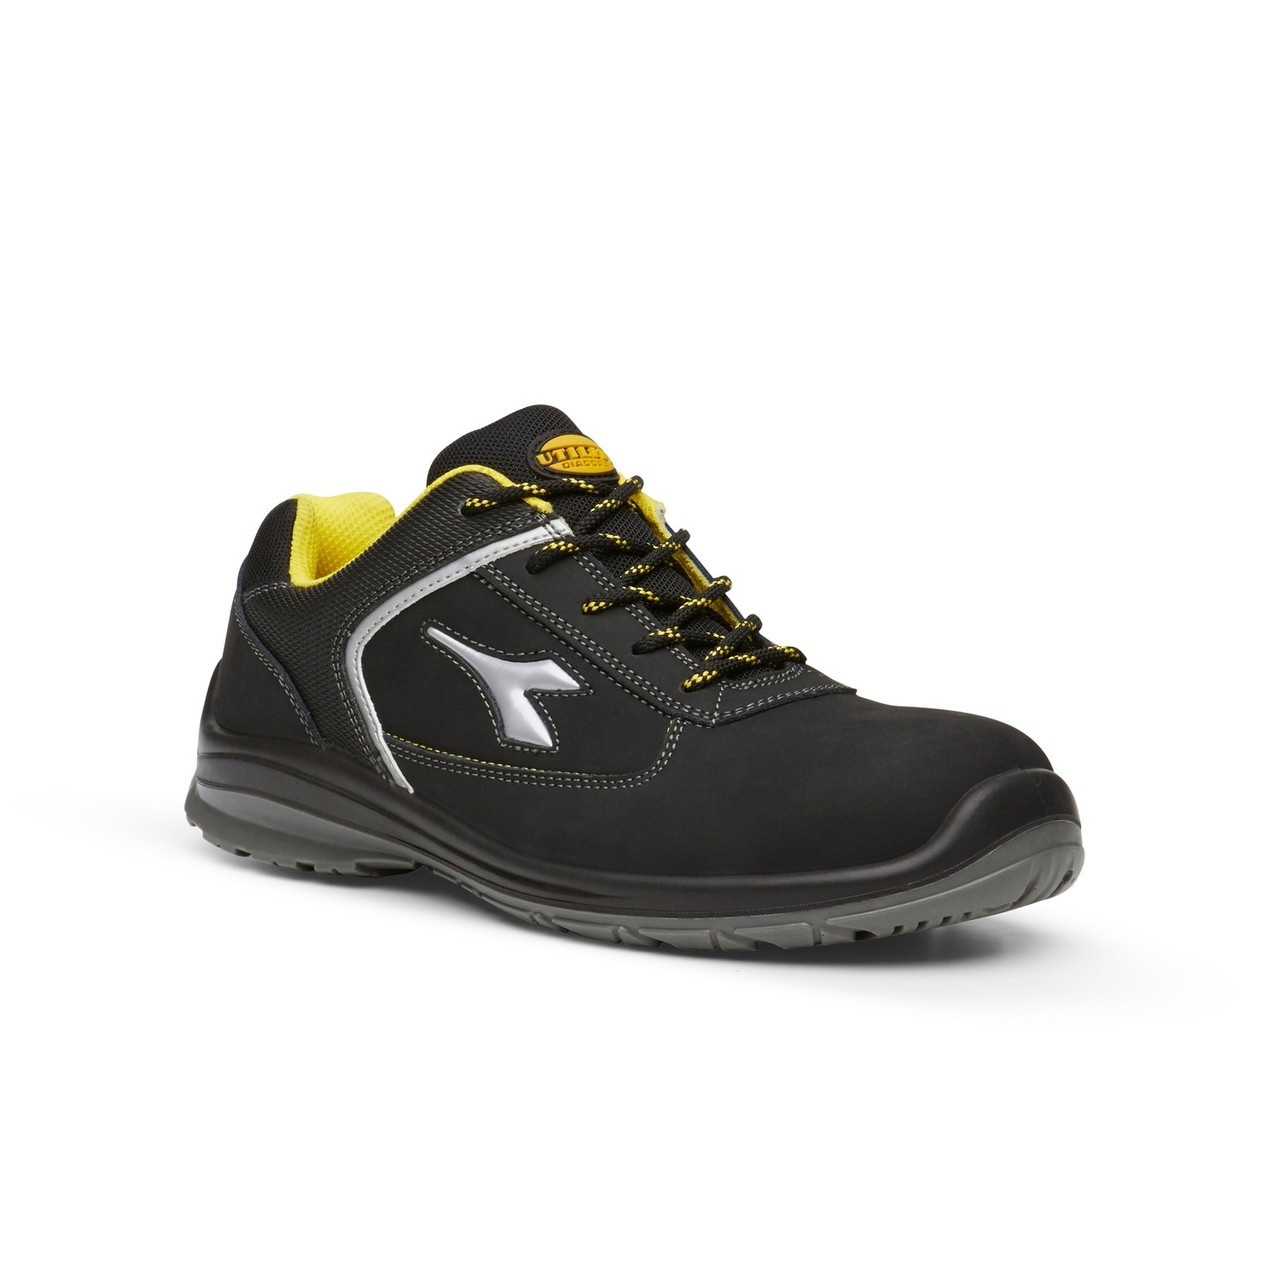 39653dac Diadora Utility Bassano Low Black and Yellow Safety Shoes with Toe Cap